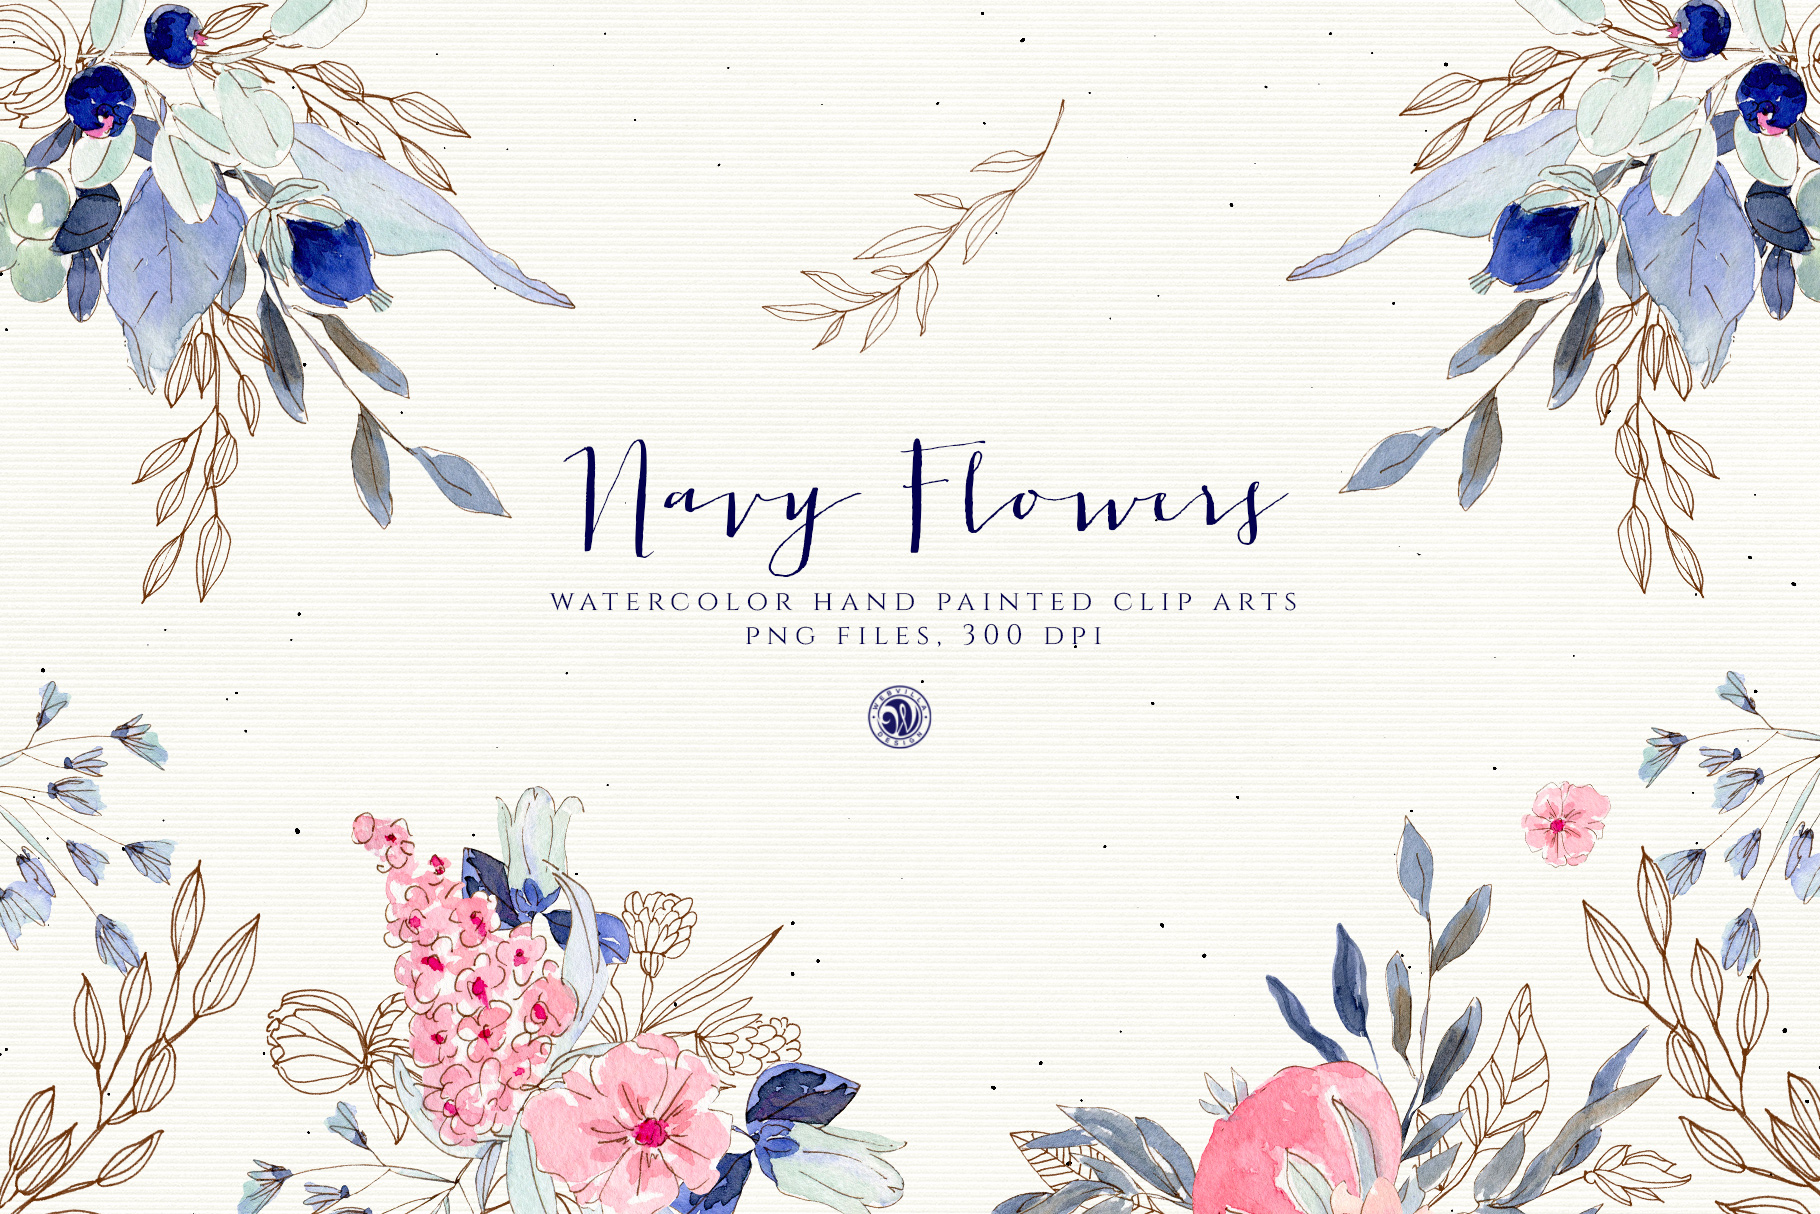 Navy Flowers - Price $12